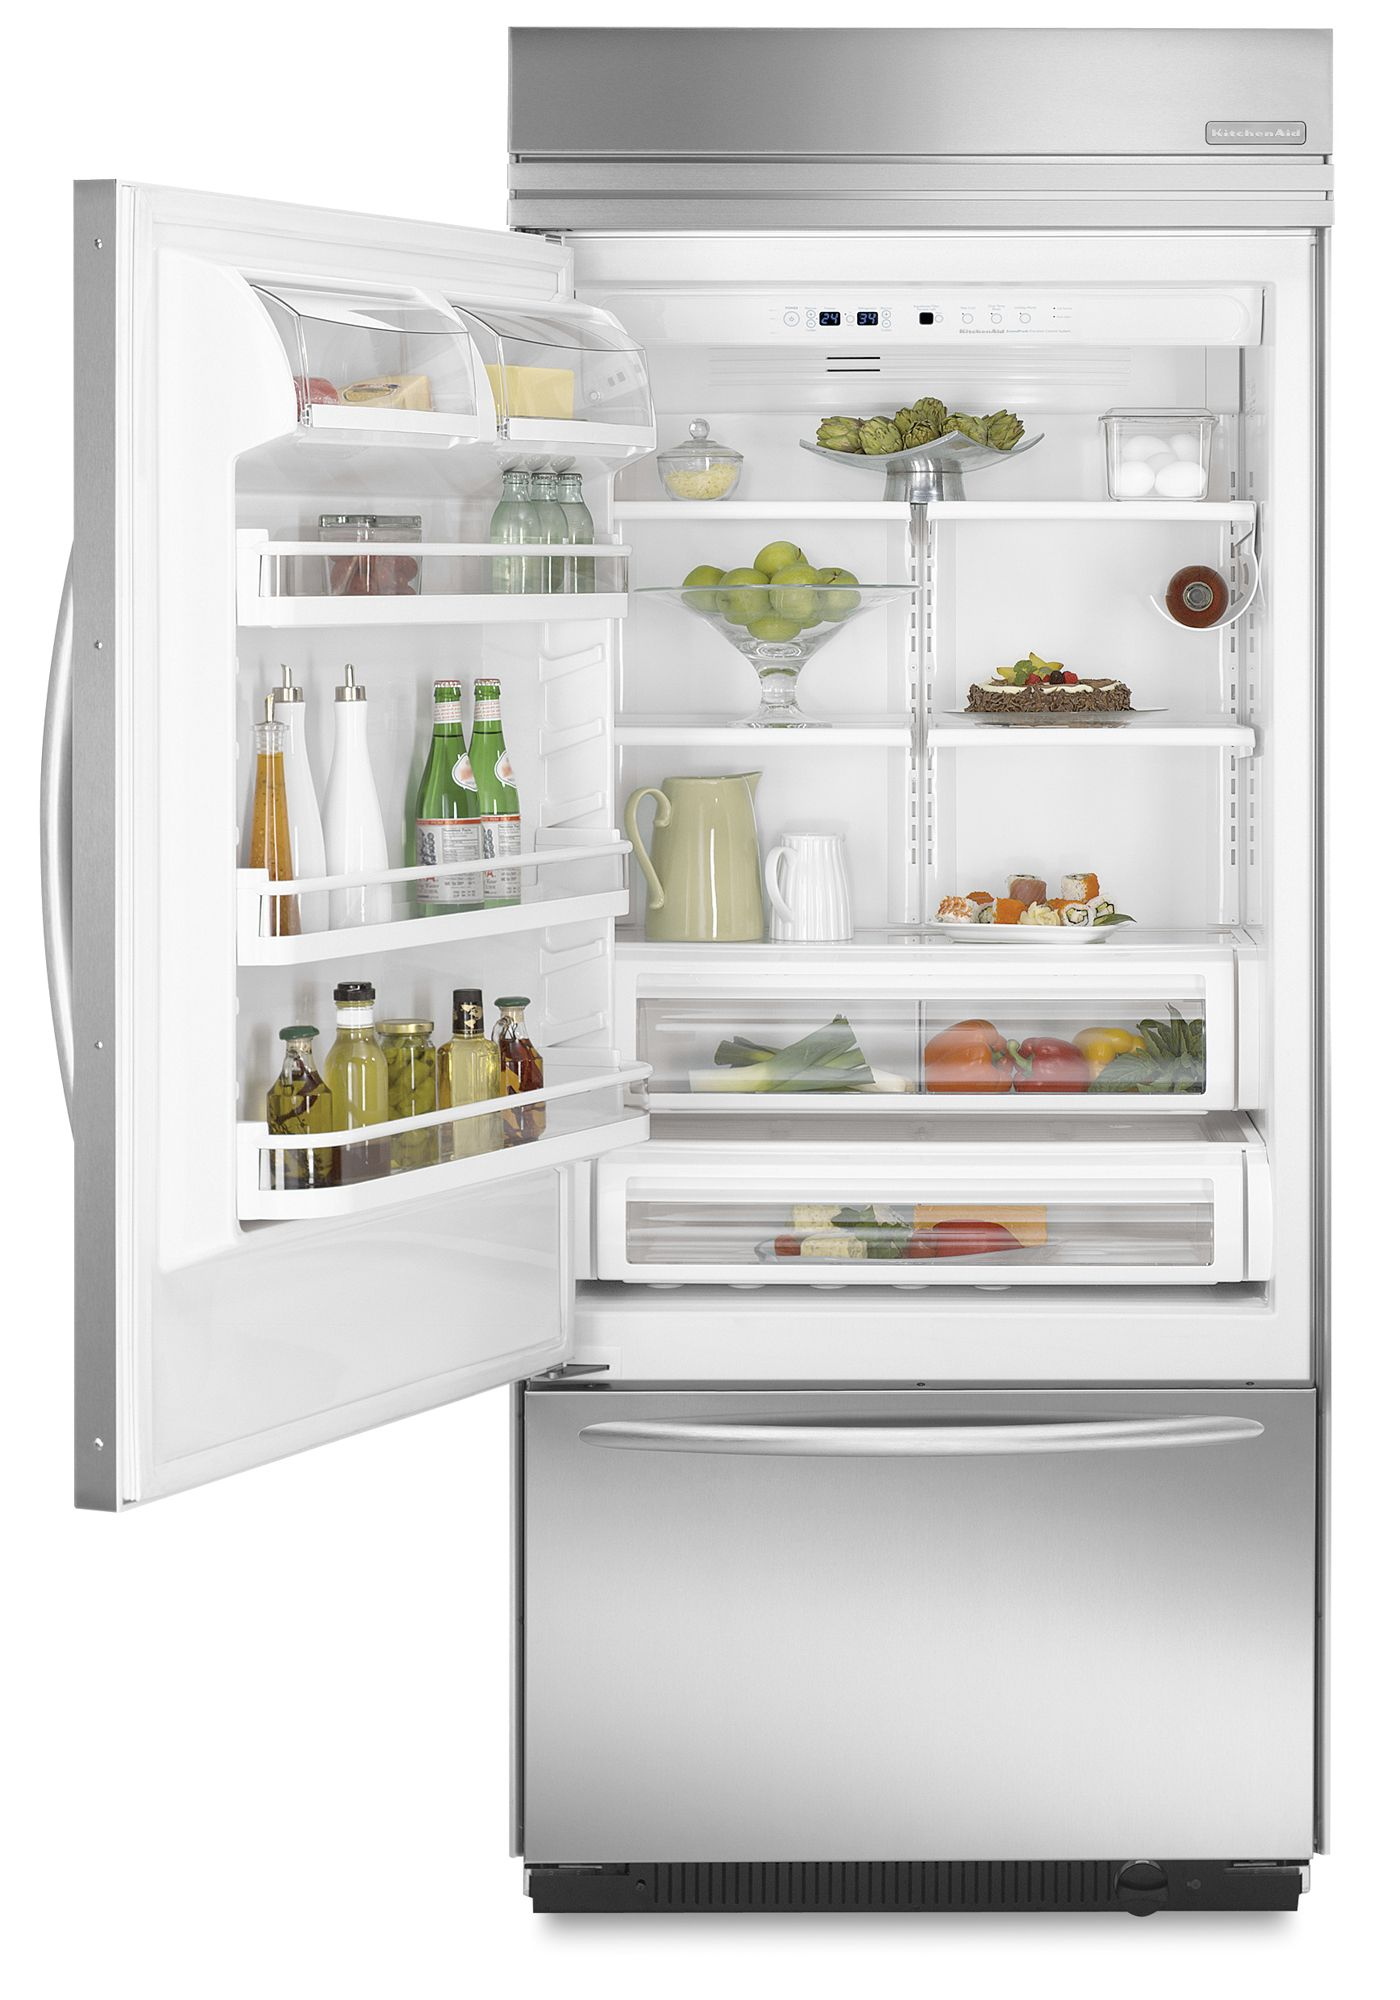 KitchenAid 20.5 cu. ft. Counter-Depth Built-In Bottom Freezer Refrigerator